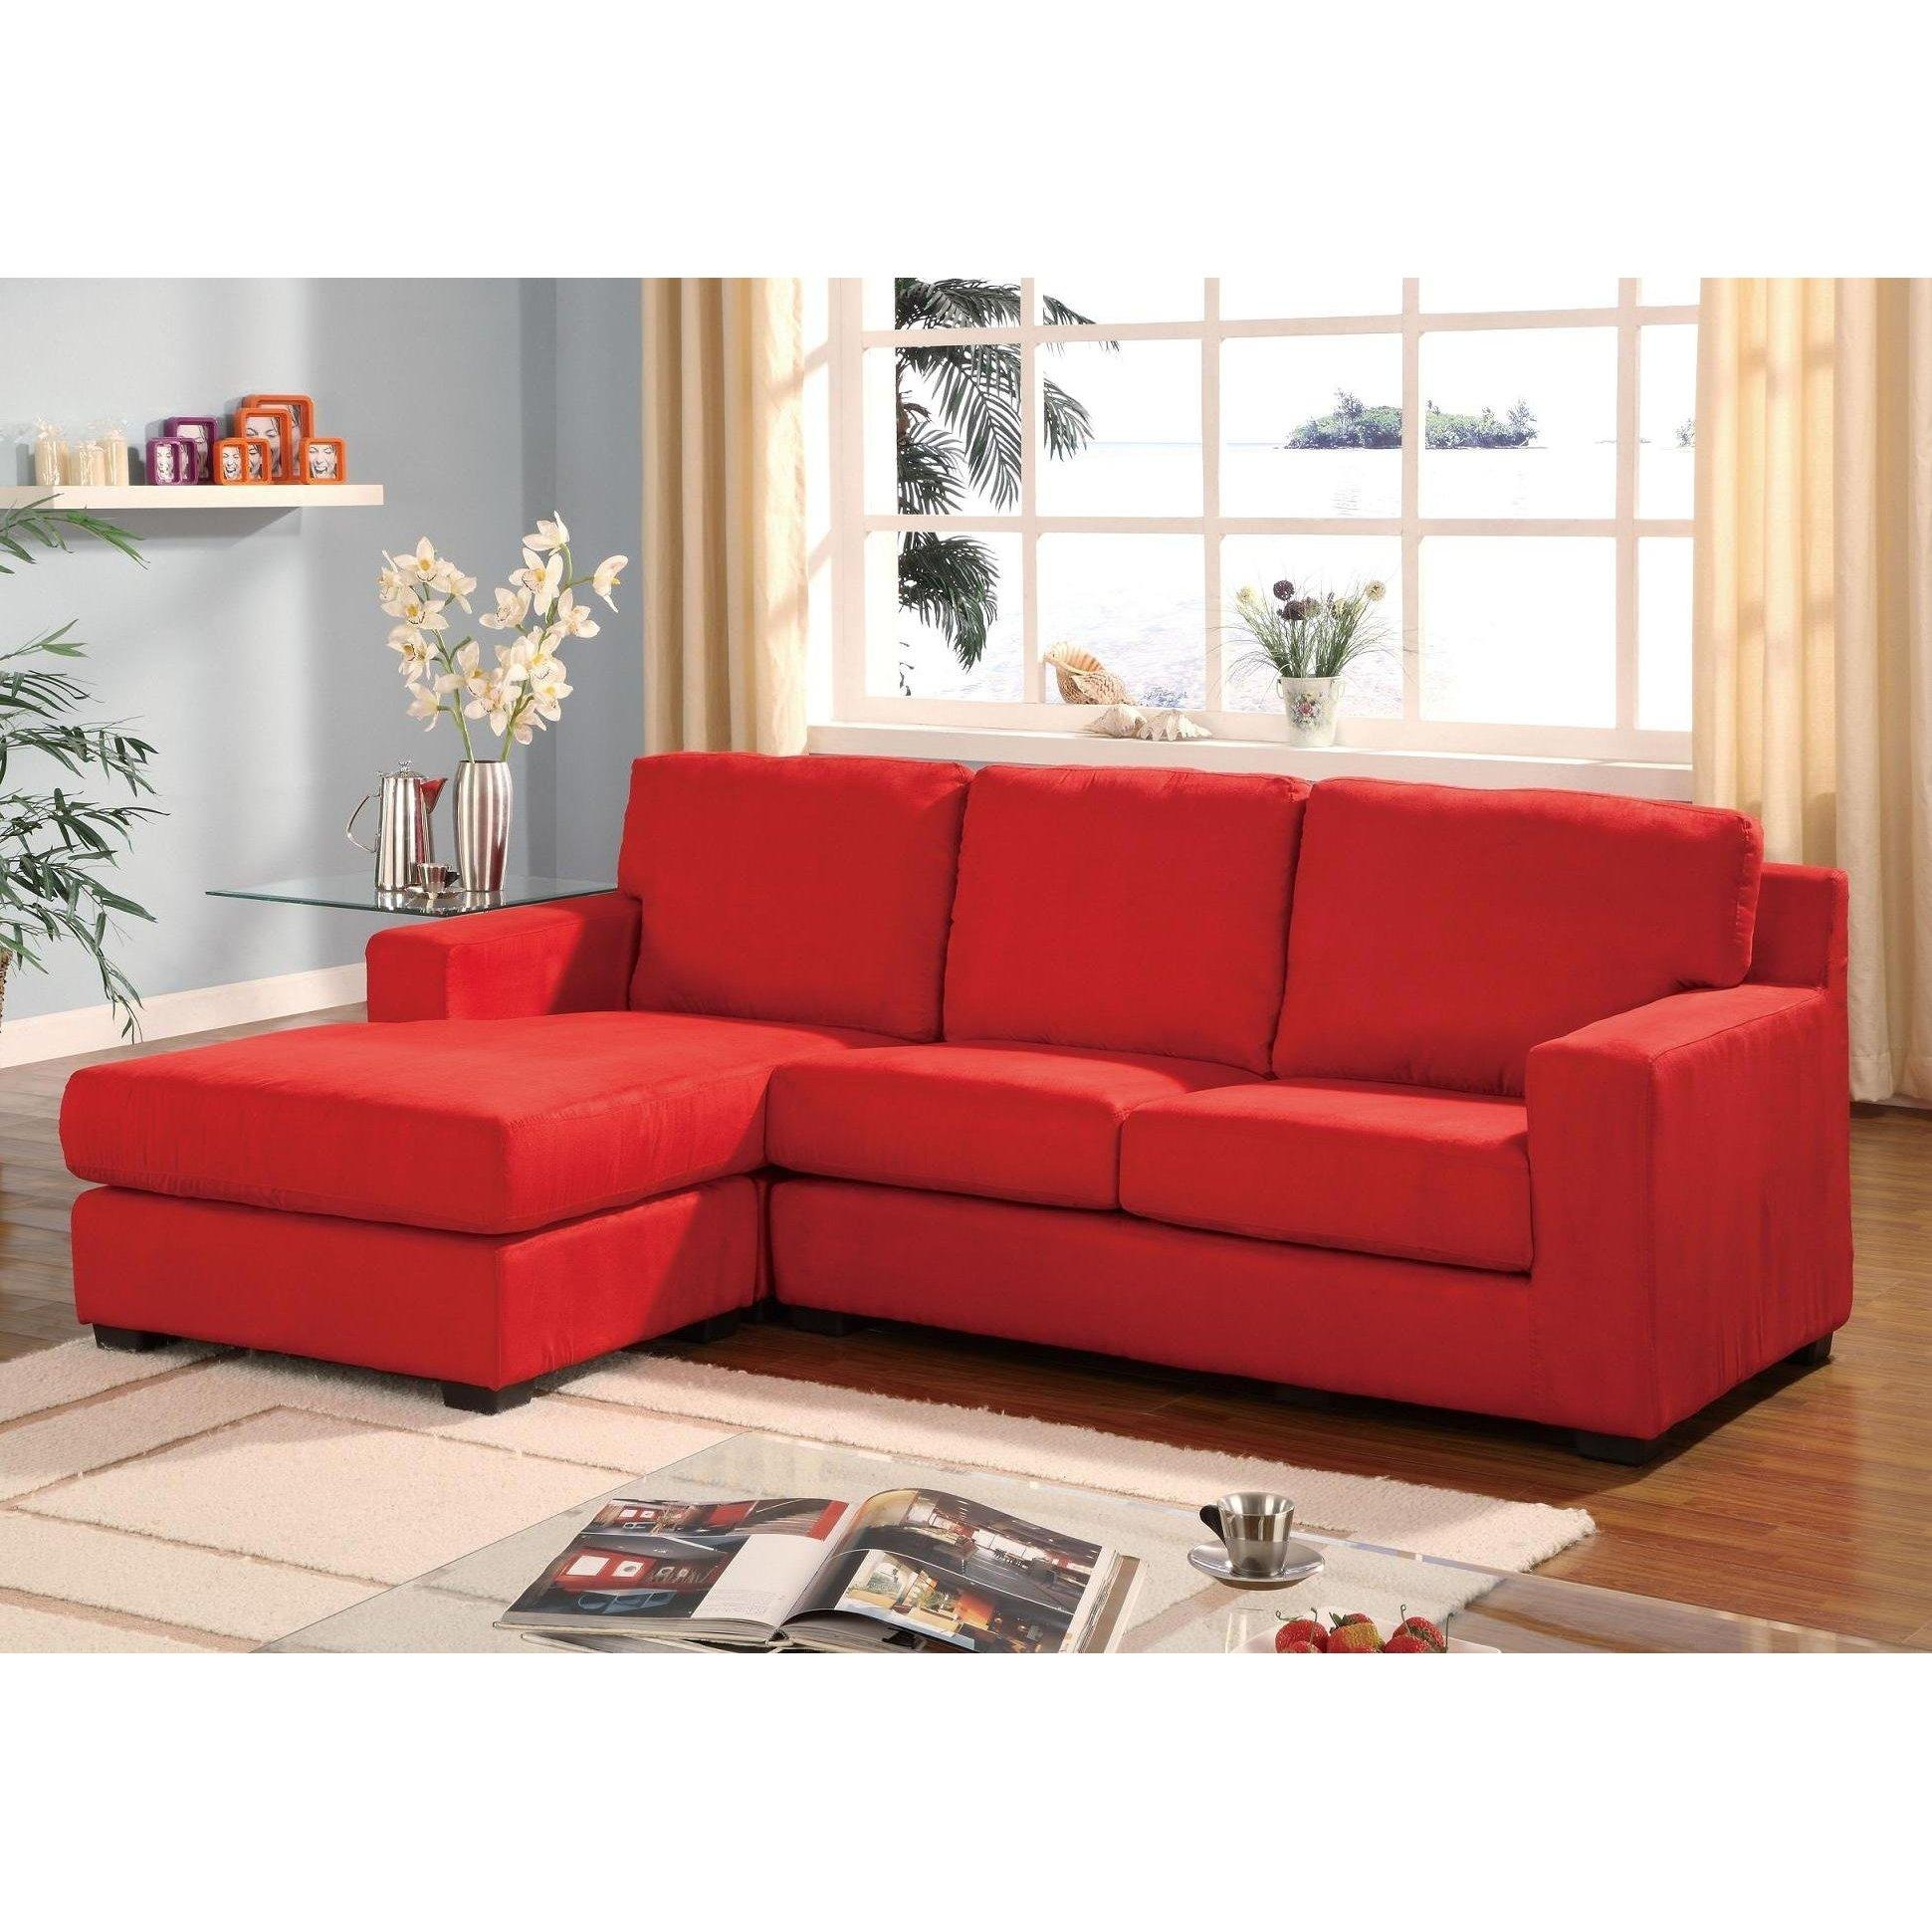 Couch With Chaise Lounge (Image 2 of 20)